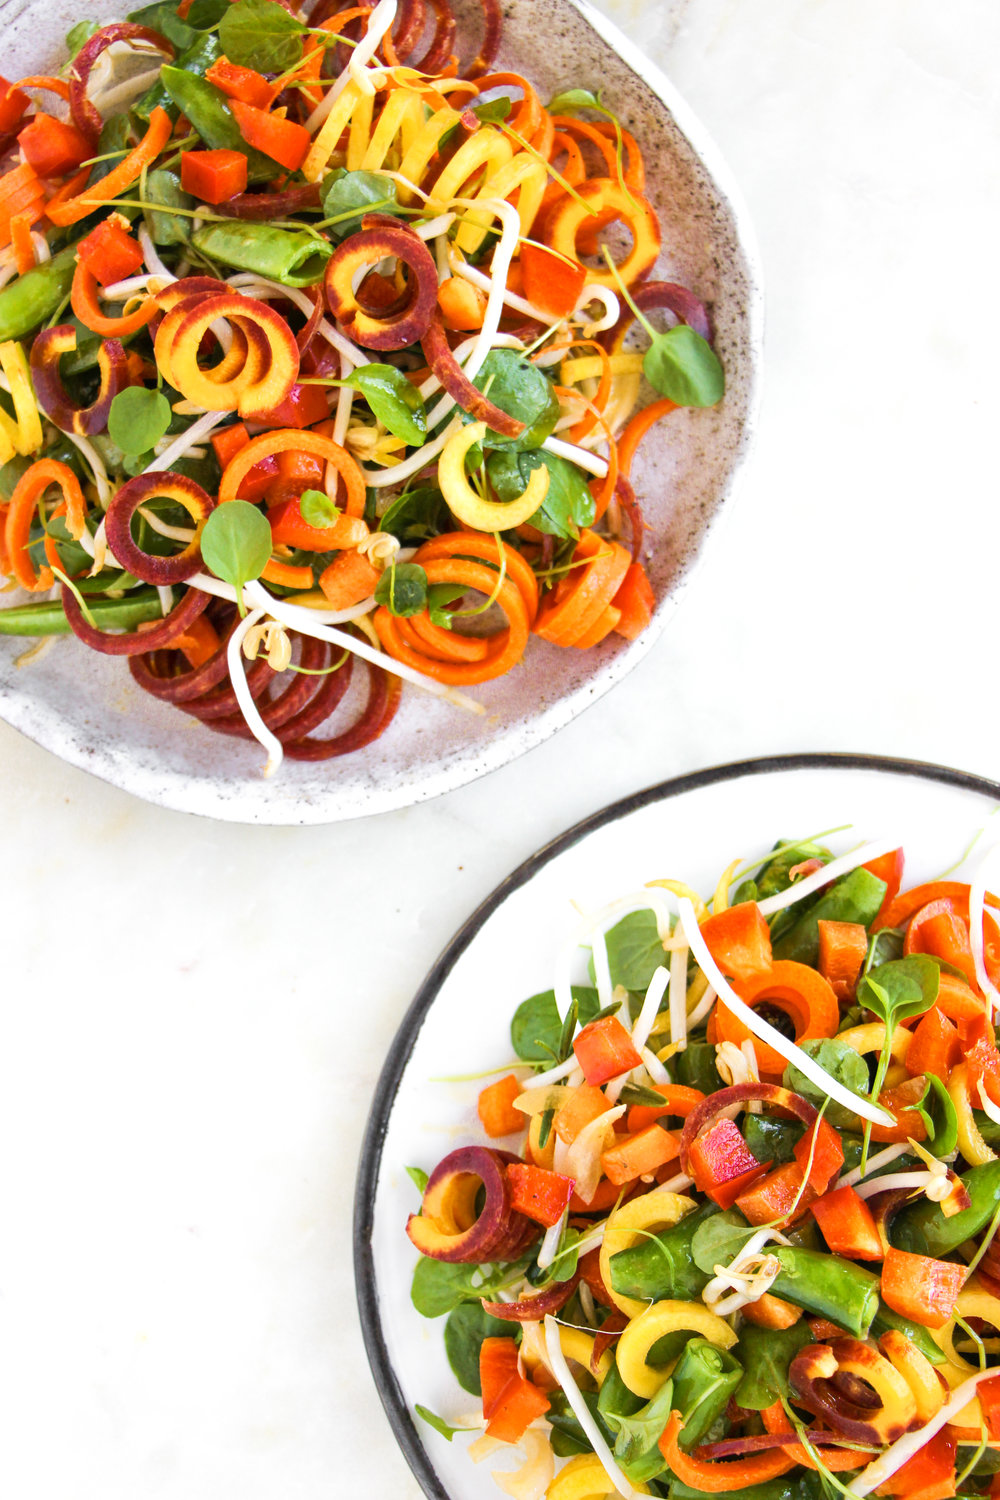 curly carrot salad with mustard vinaigrette // #ShiraRD #paleo #refinedsugarfree #SnacksbyShira